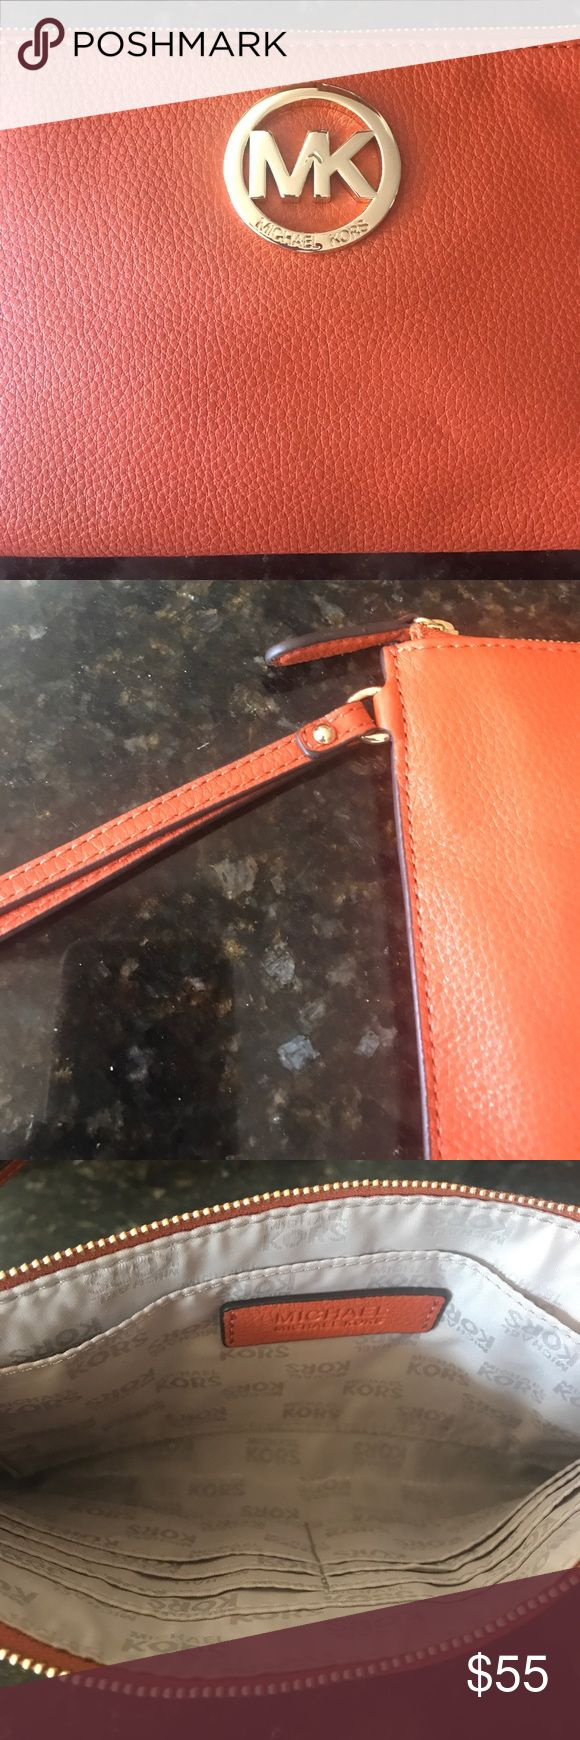 "MICHAEL KORS Fulton Large Zip Burnt Orange Clutch 🎃Used only Once!! 10 x 5.5 "" soft leather:). Less $$ on Ⓜ️ or 🅿️🅿️ Michael Kors Bags Clutches & Wristlets"